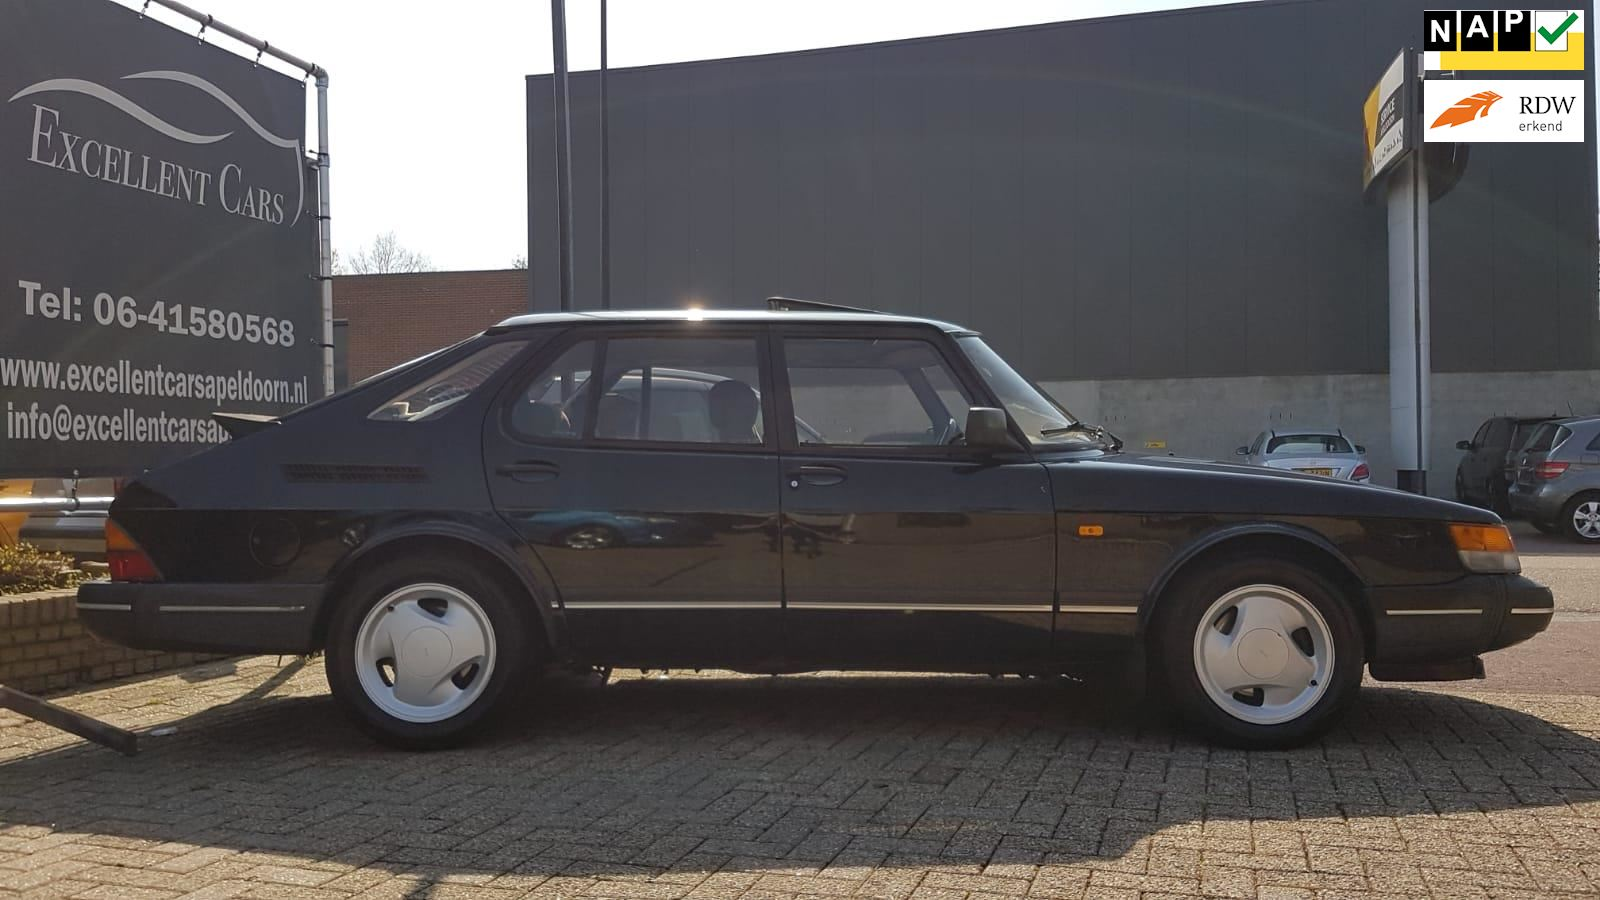 Saab 900 occasion - Excellent Cars